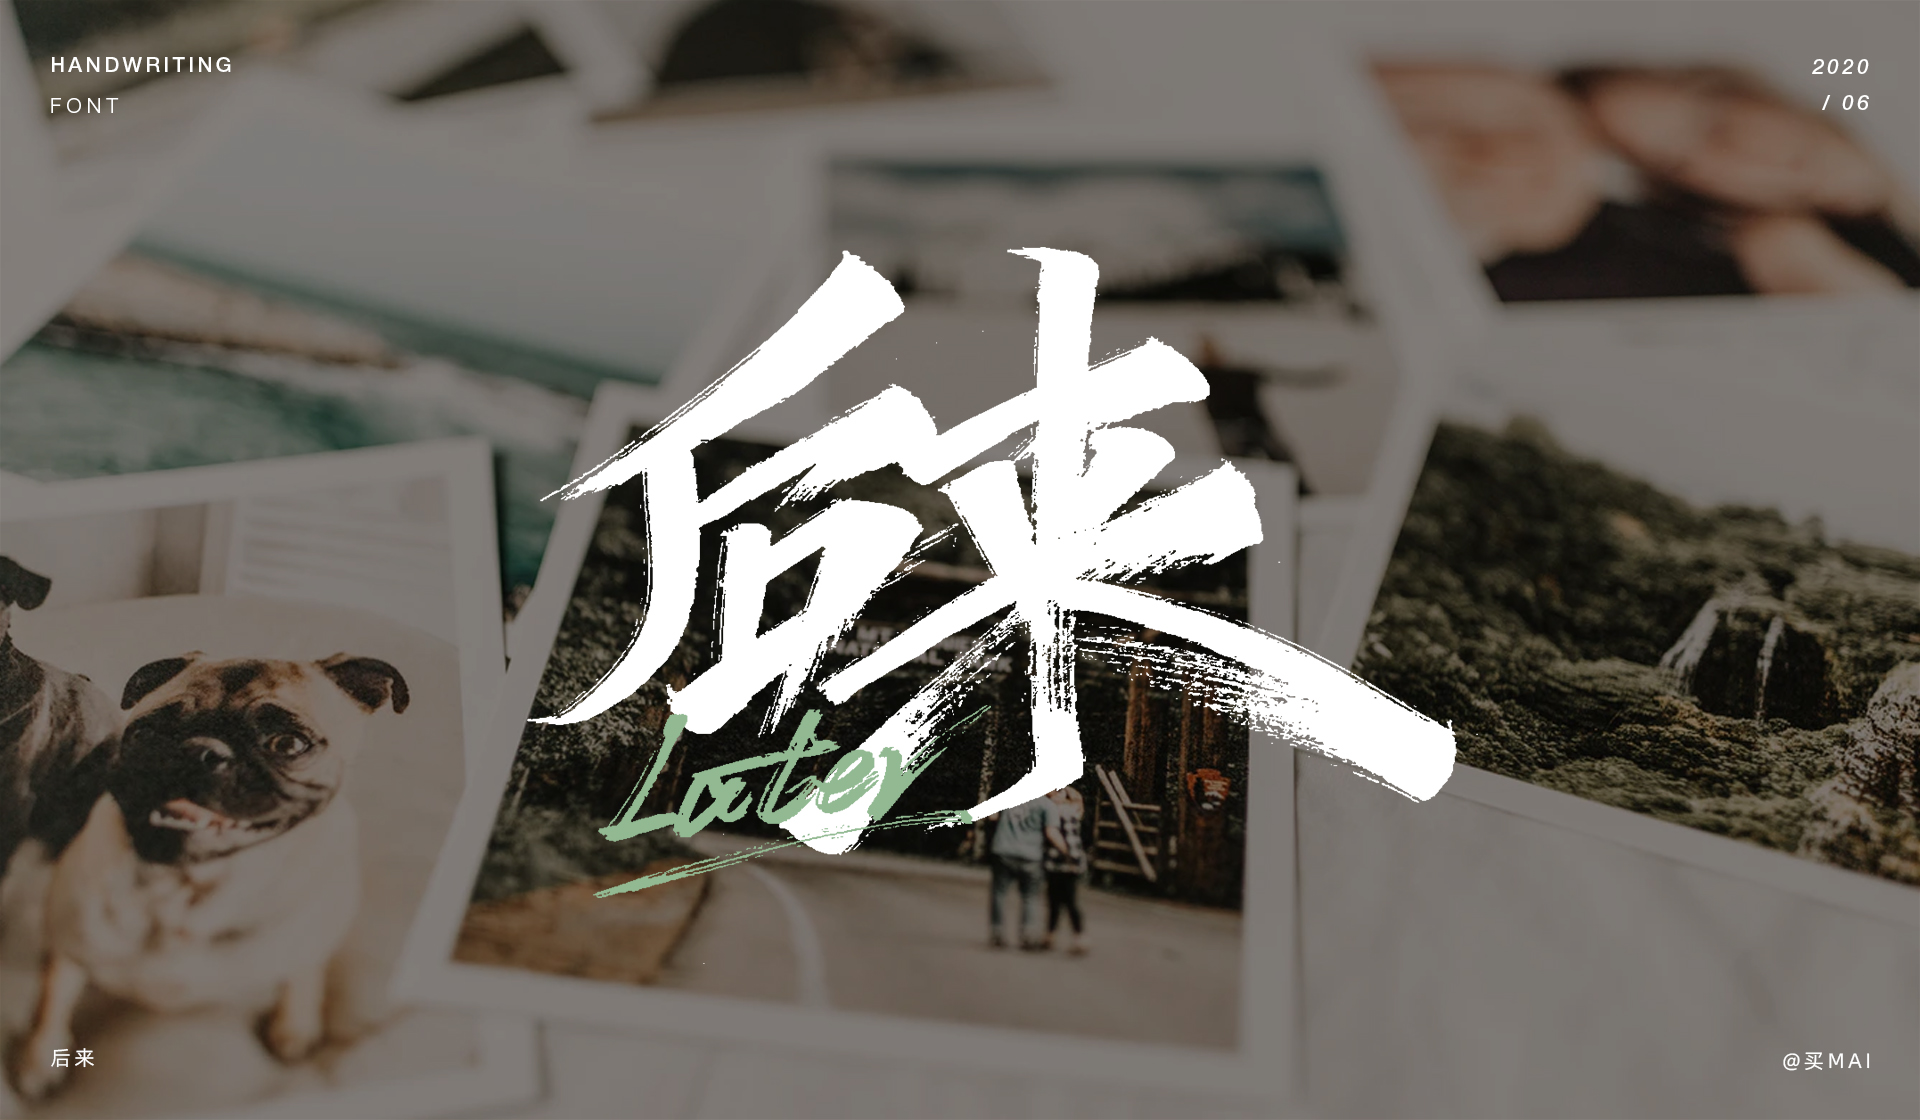 Writing brush font design combining calligraphy and painting.